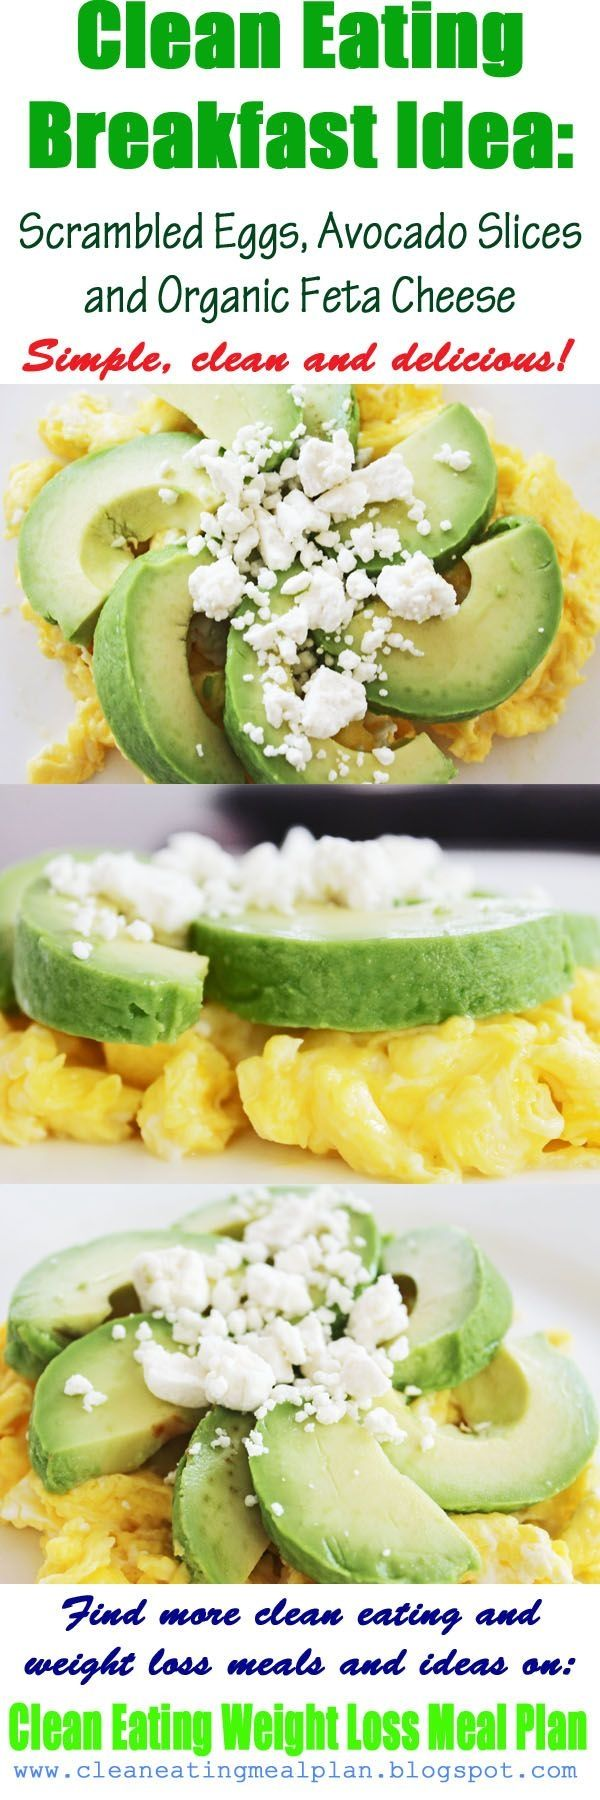 Healthy breakfast recipe: scrambled eggs, avocado, organic feta cheese. (from Clean Eating Weight Loss Meal Plan Blog) Click pin for daily clean eating & weight loss meal plans and easy healthy recipe (Clean Eating Low Carb Breakfast)